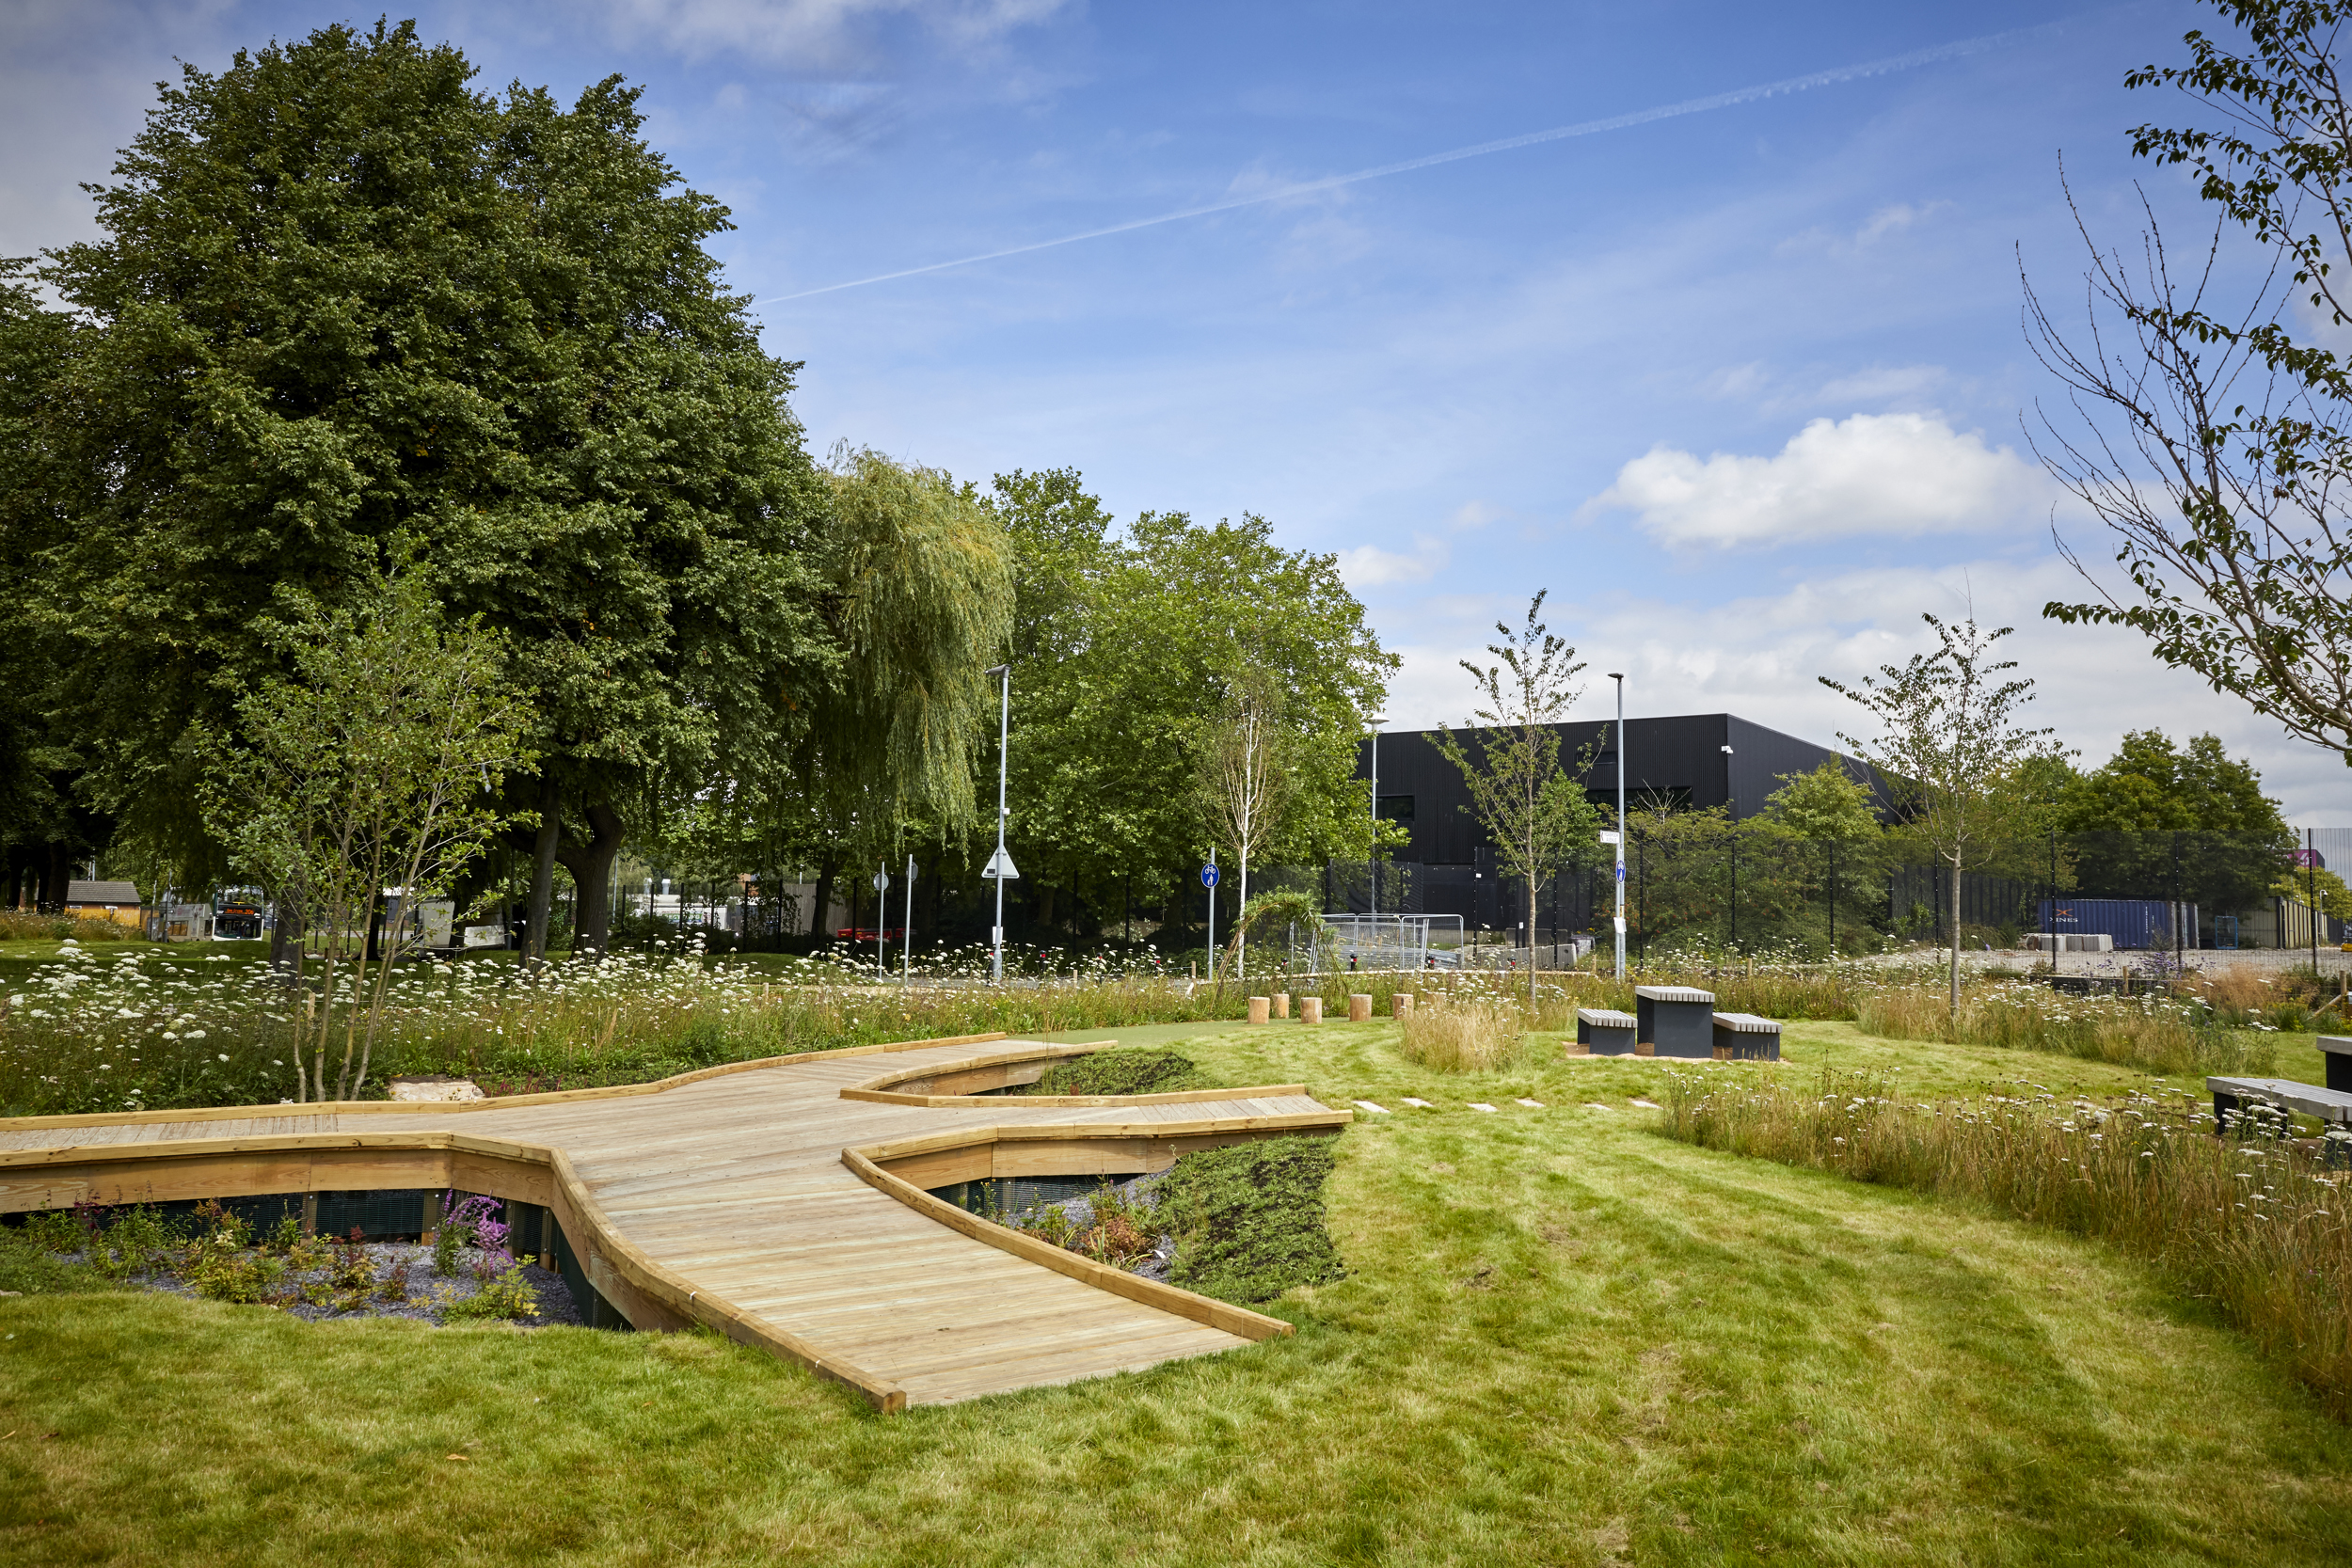 The ultimate goal of GrowGreen is to develop a toolkit that will be used by other cities around the world to implement such strategies to combat the effects of climate change. Image credit - Manchester City Council